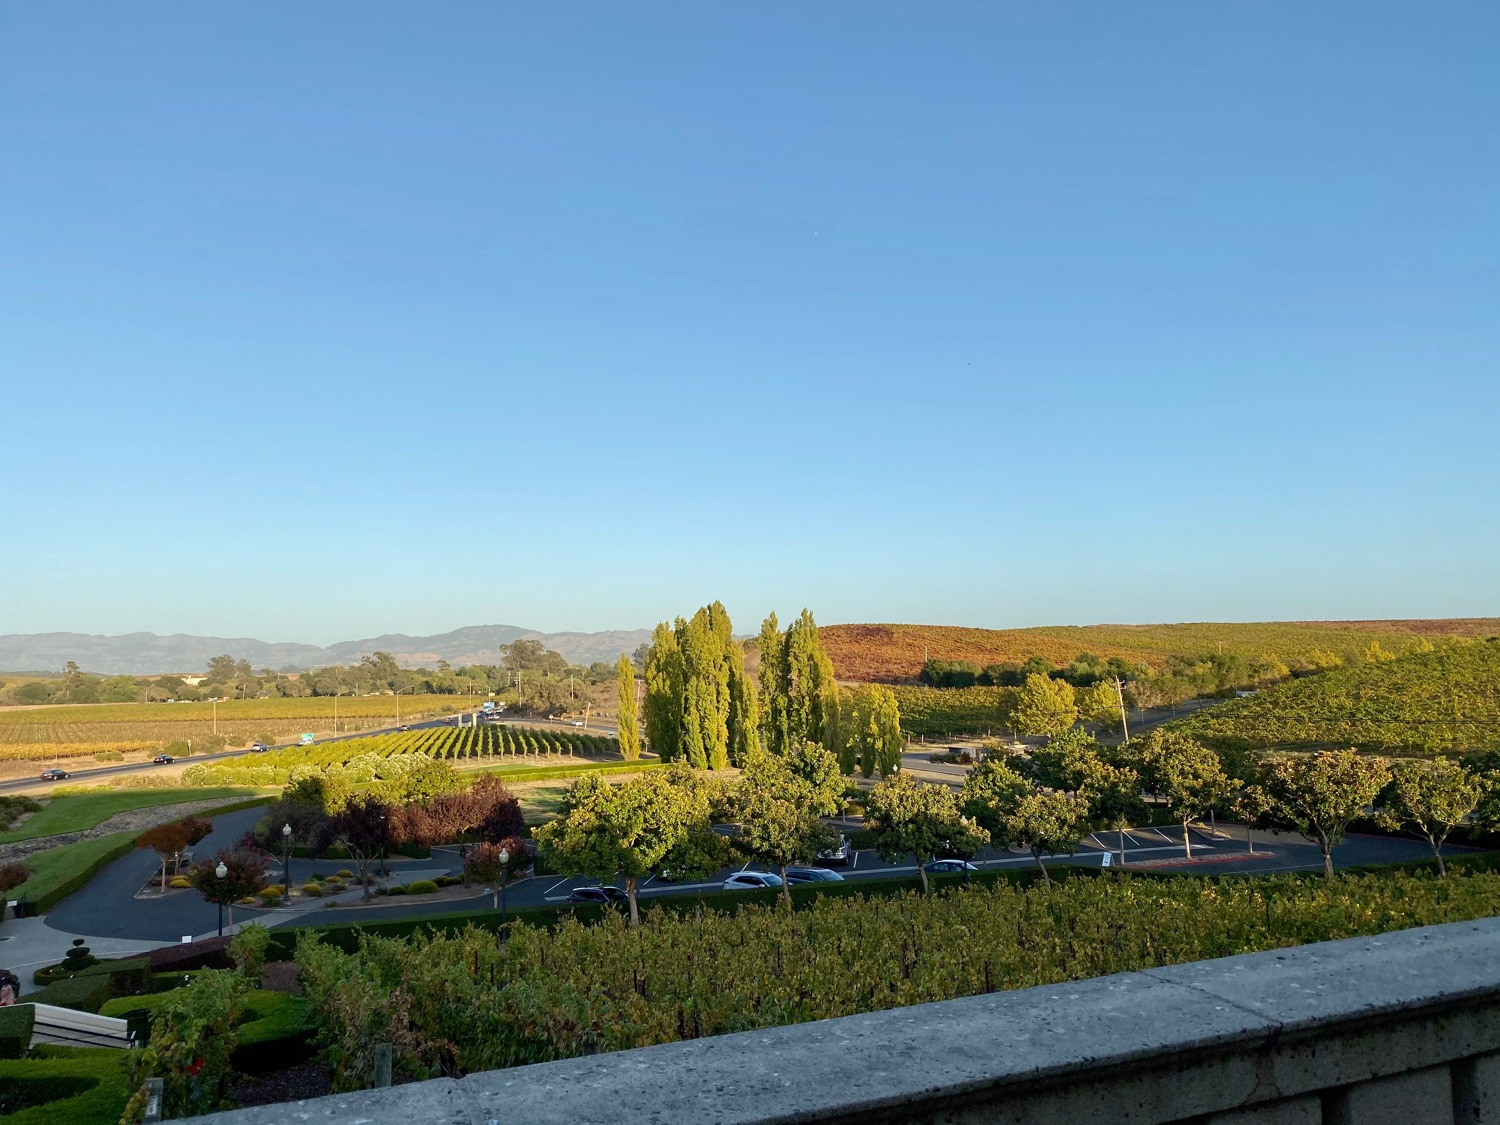 The view from Domaine Carneros